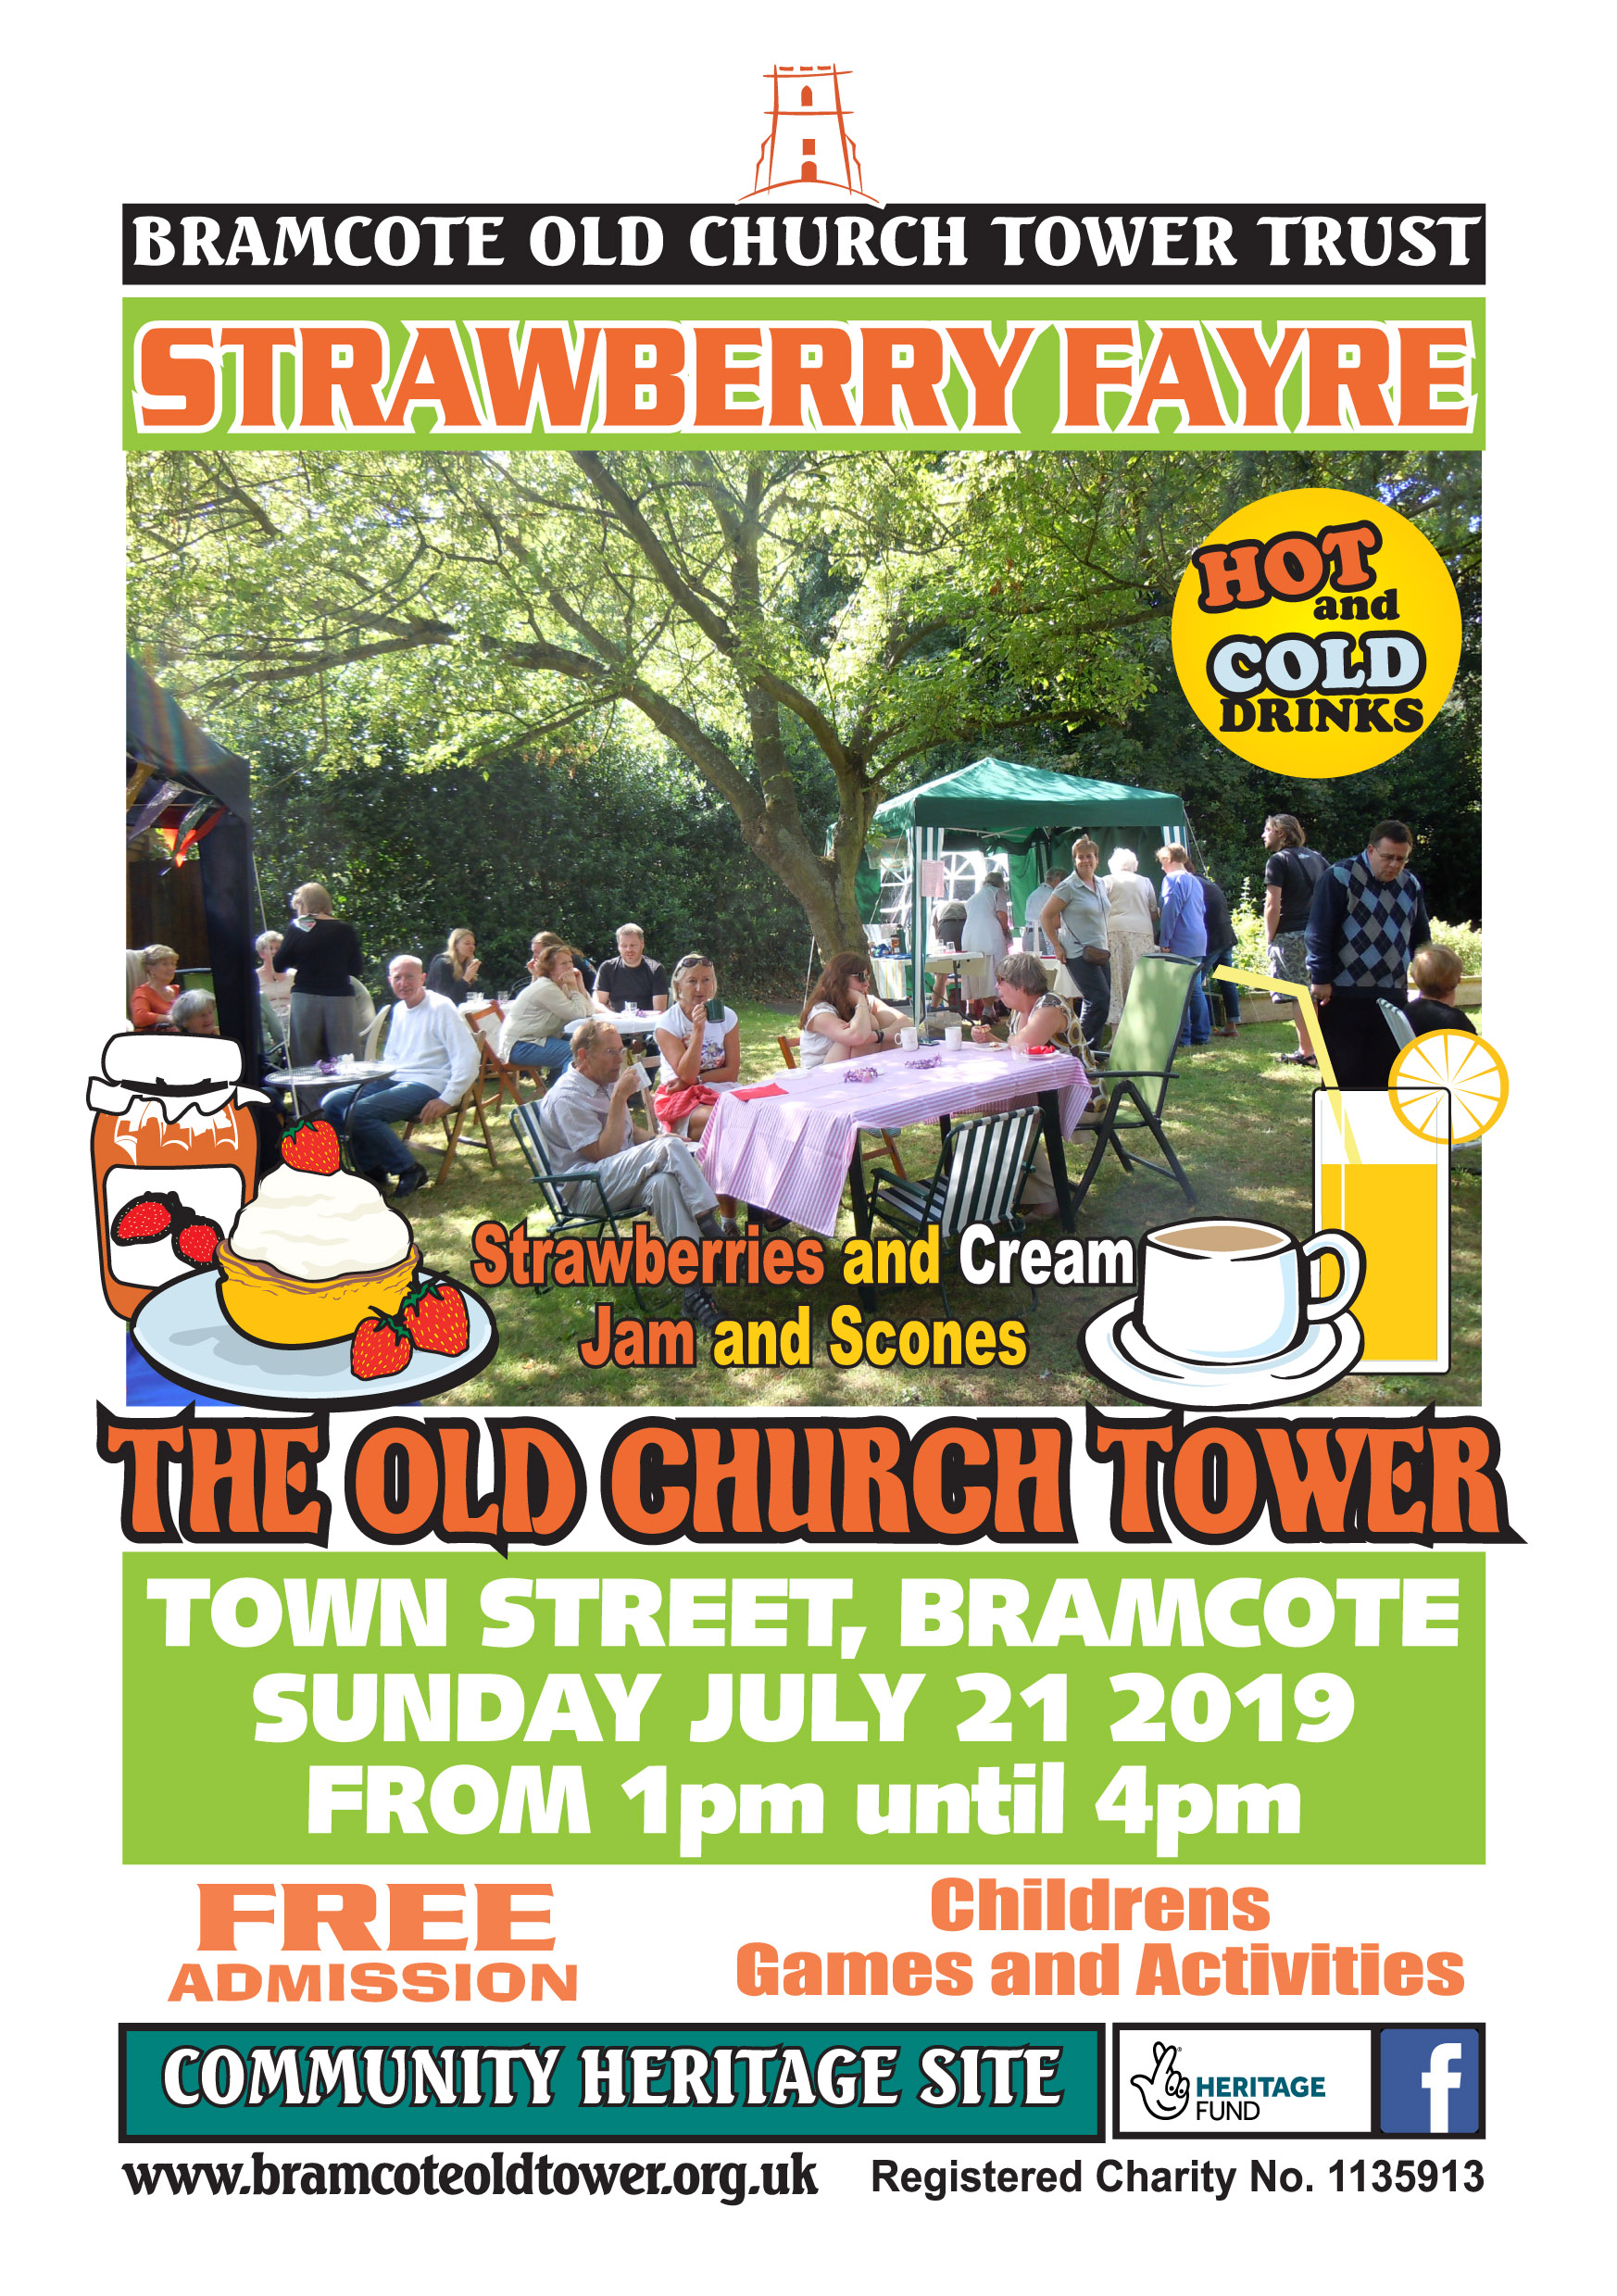 Strawberry Fayre event.